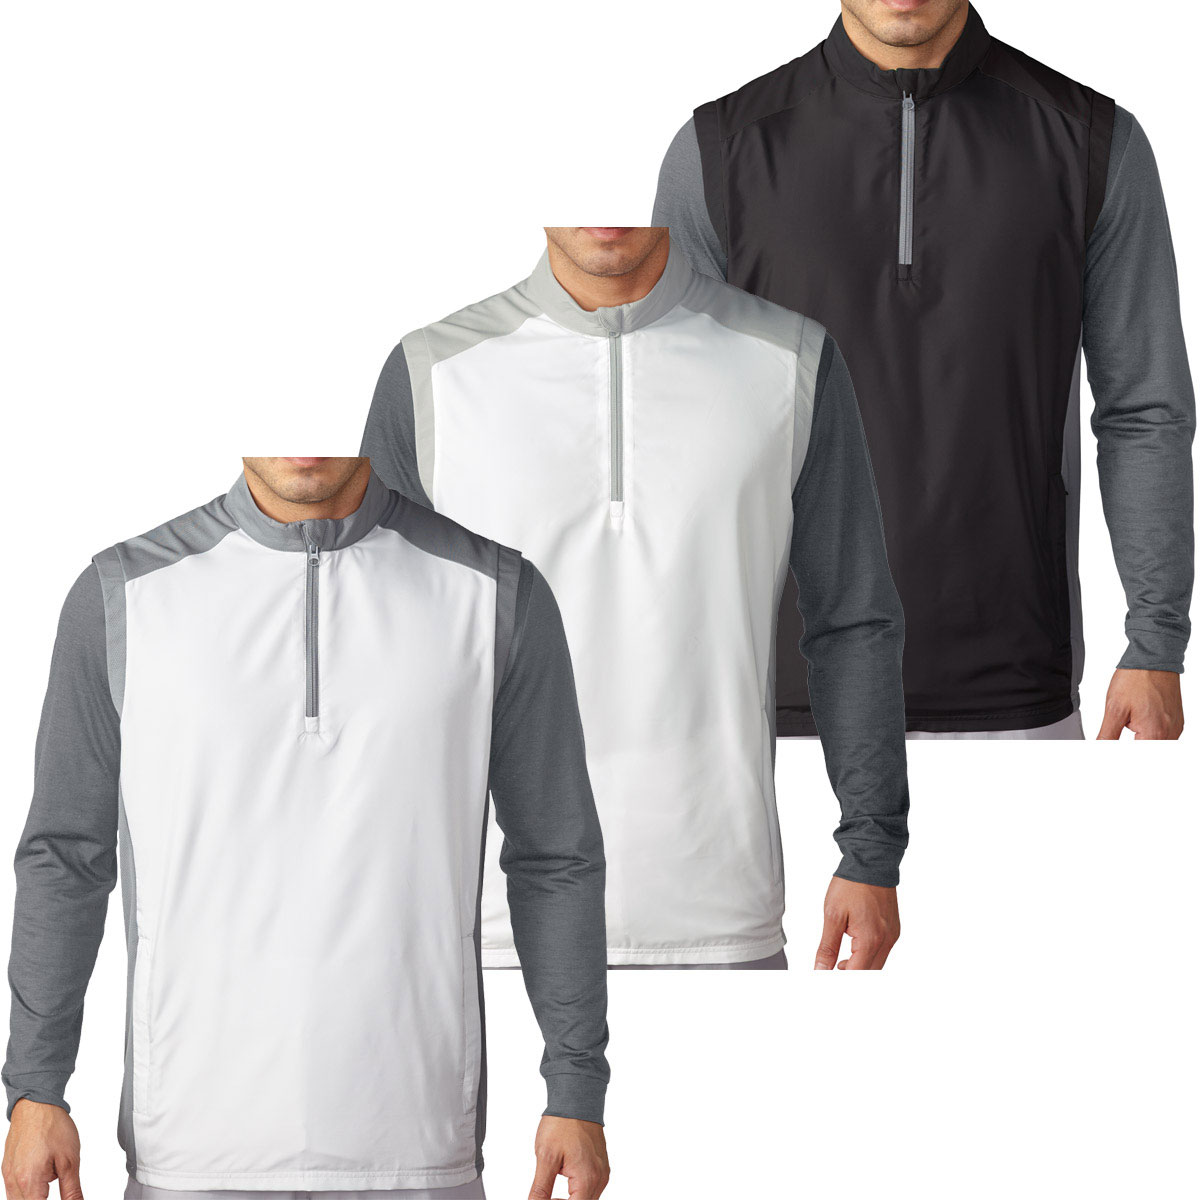 b9bb04774 Details about adidas Golf Mens Club Half Zip Wind Vest Windproof Pullover  Top 53% OFF RRP